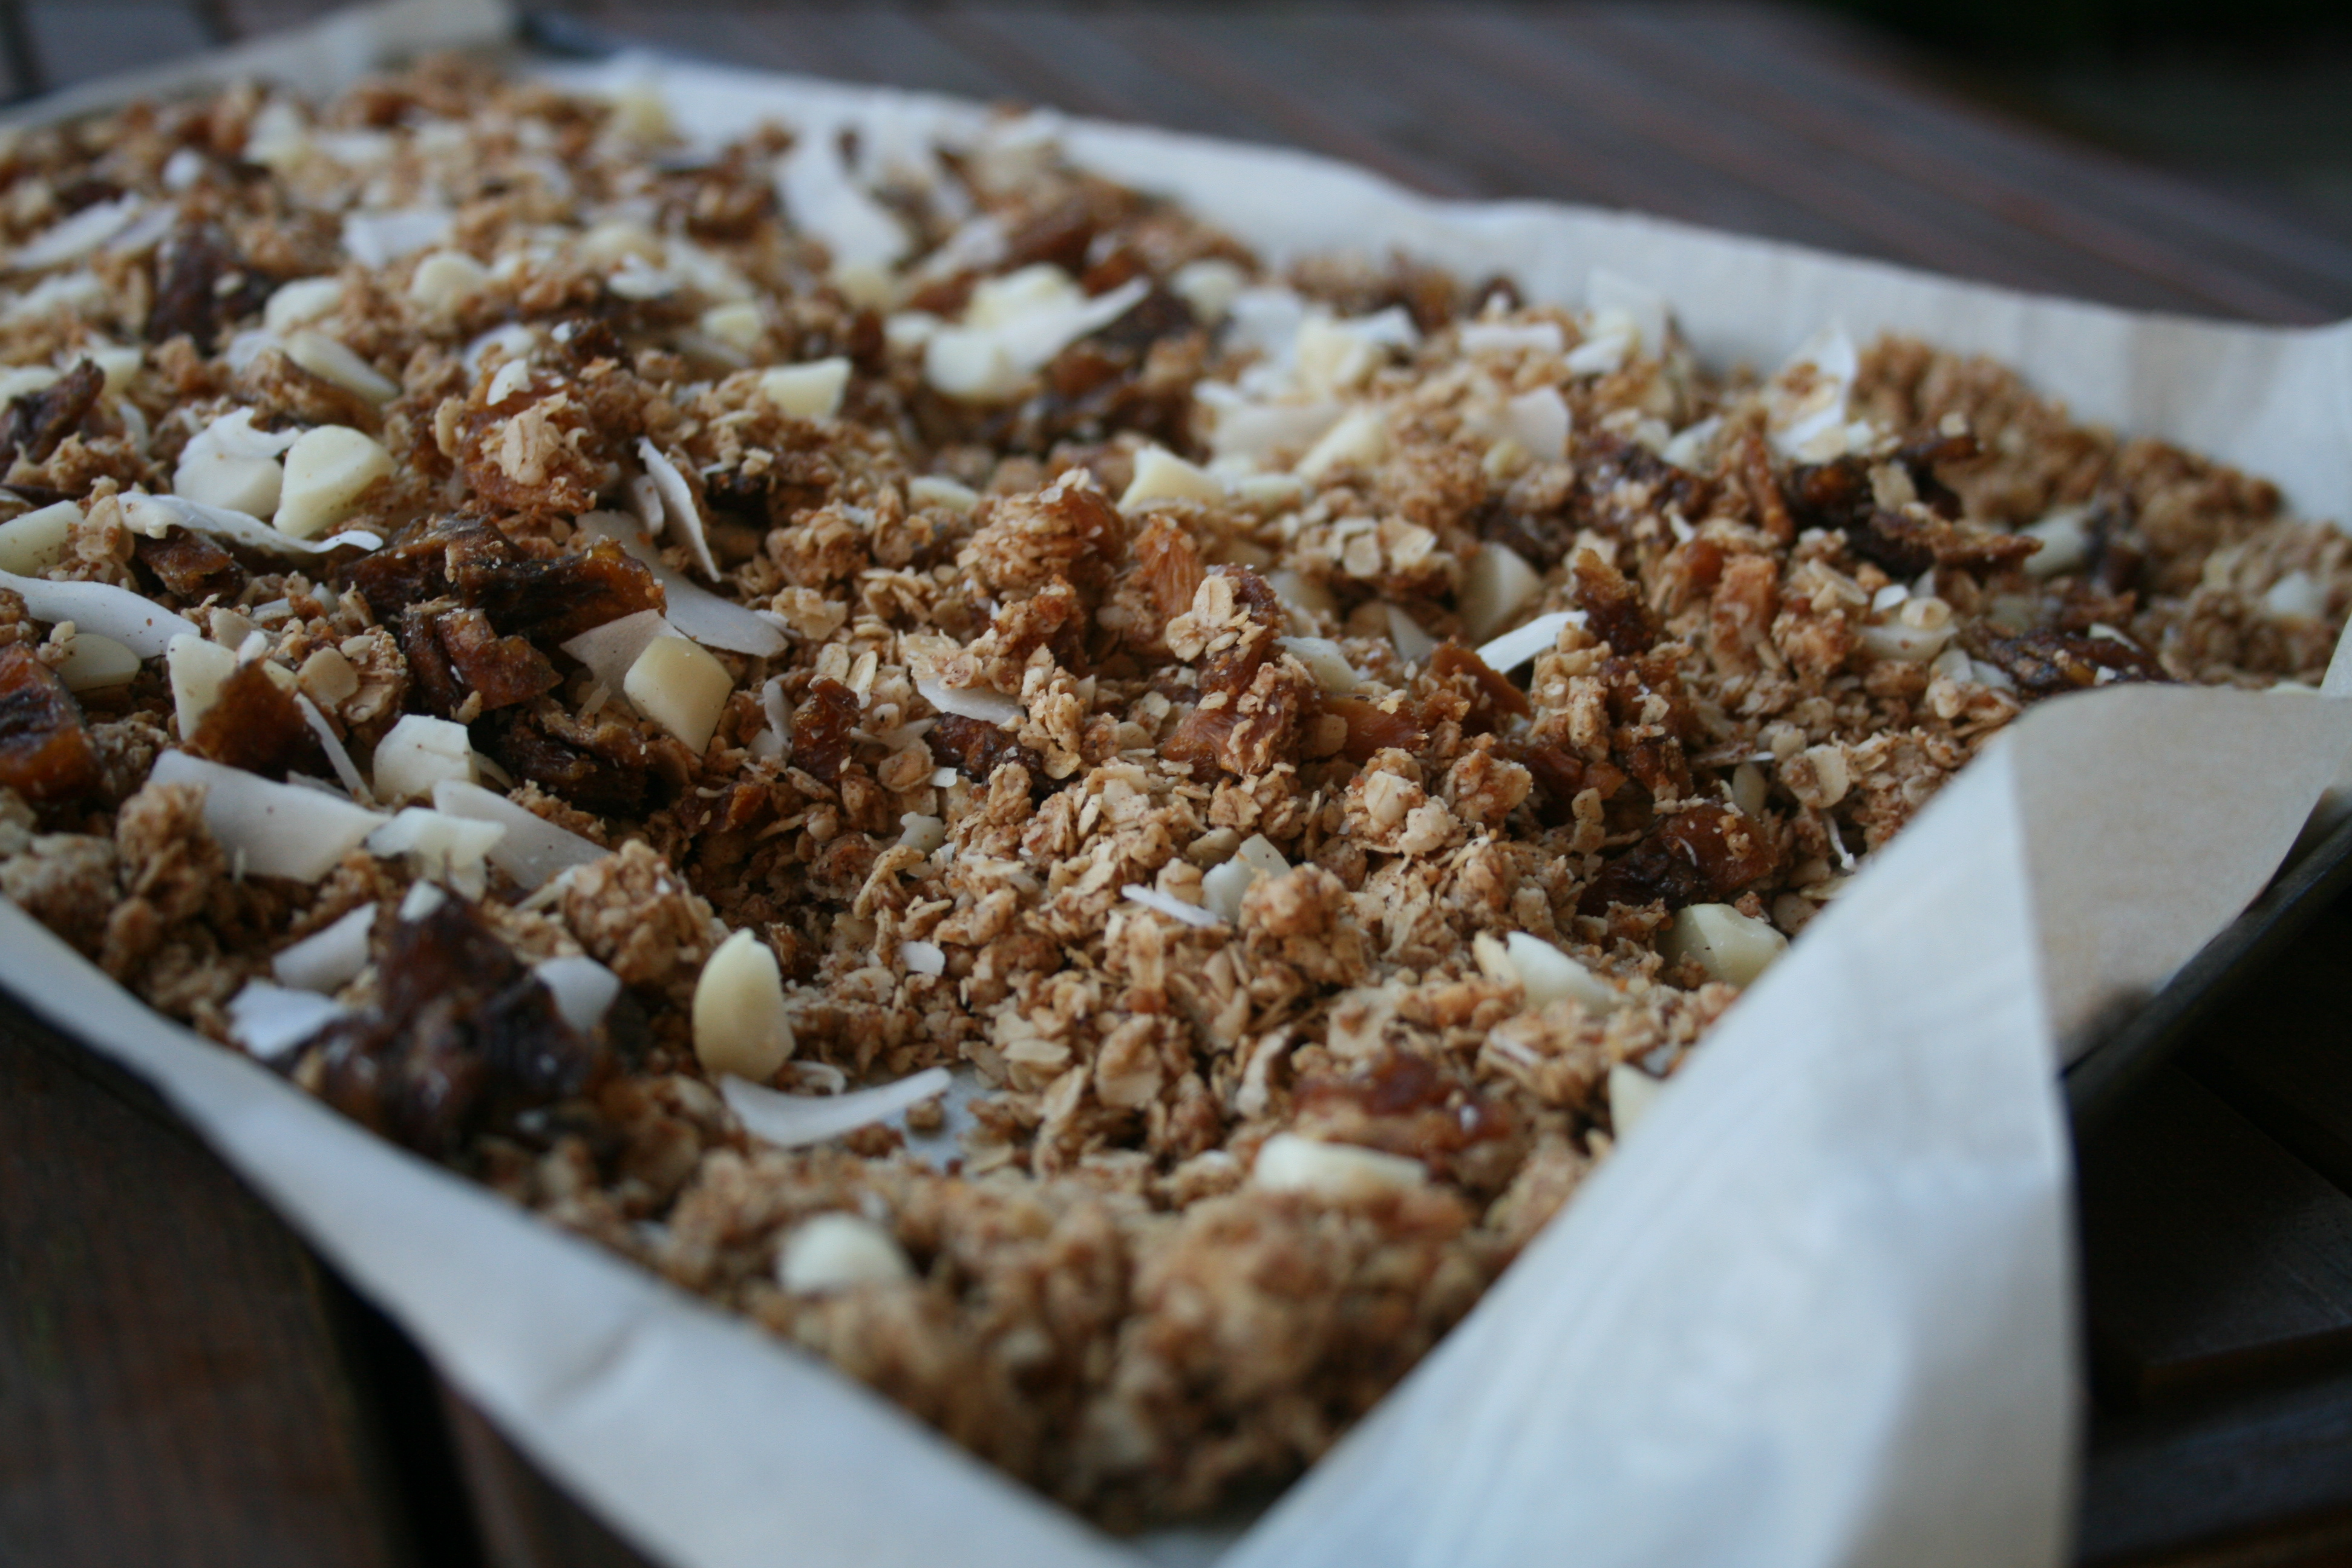 Tropical Granola Parfait - Love from the Land